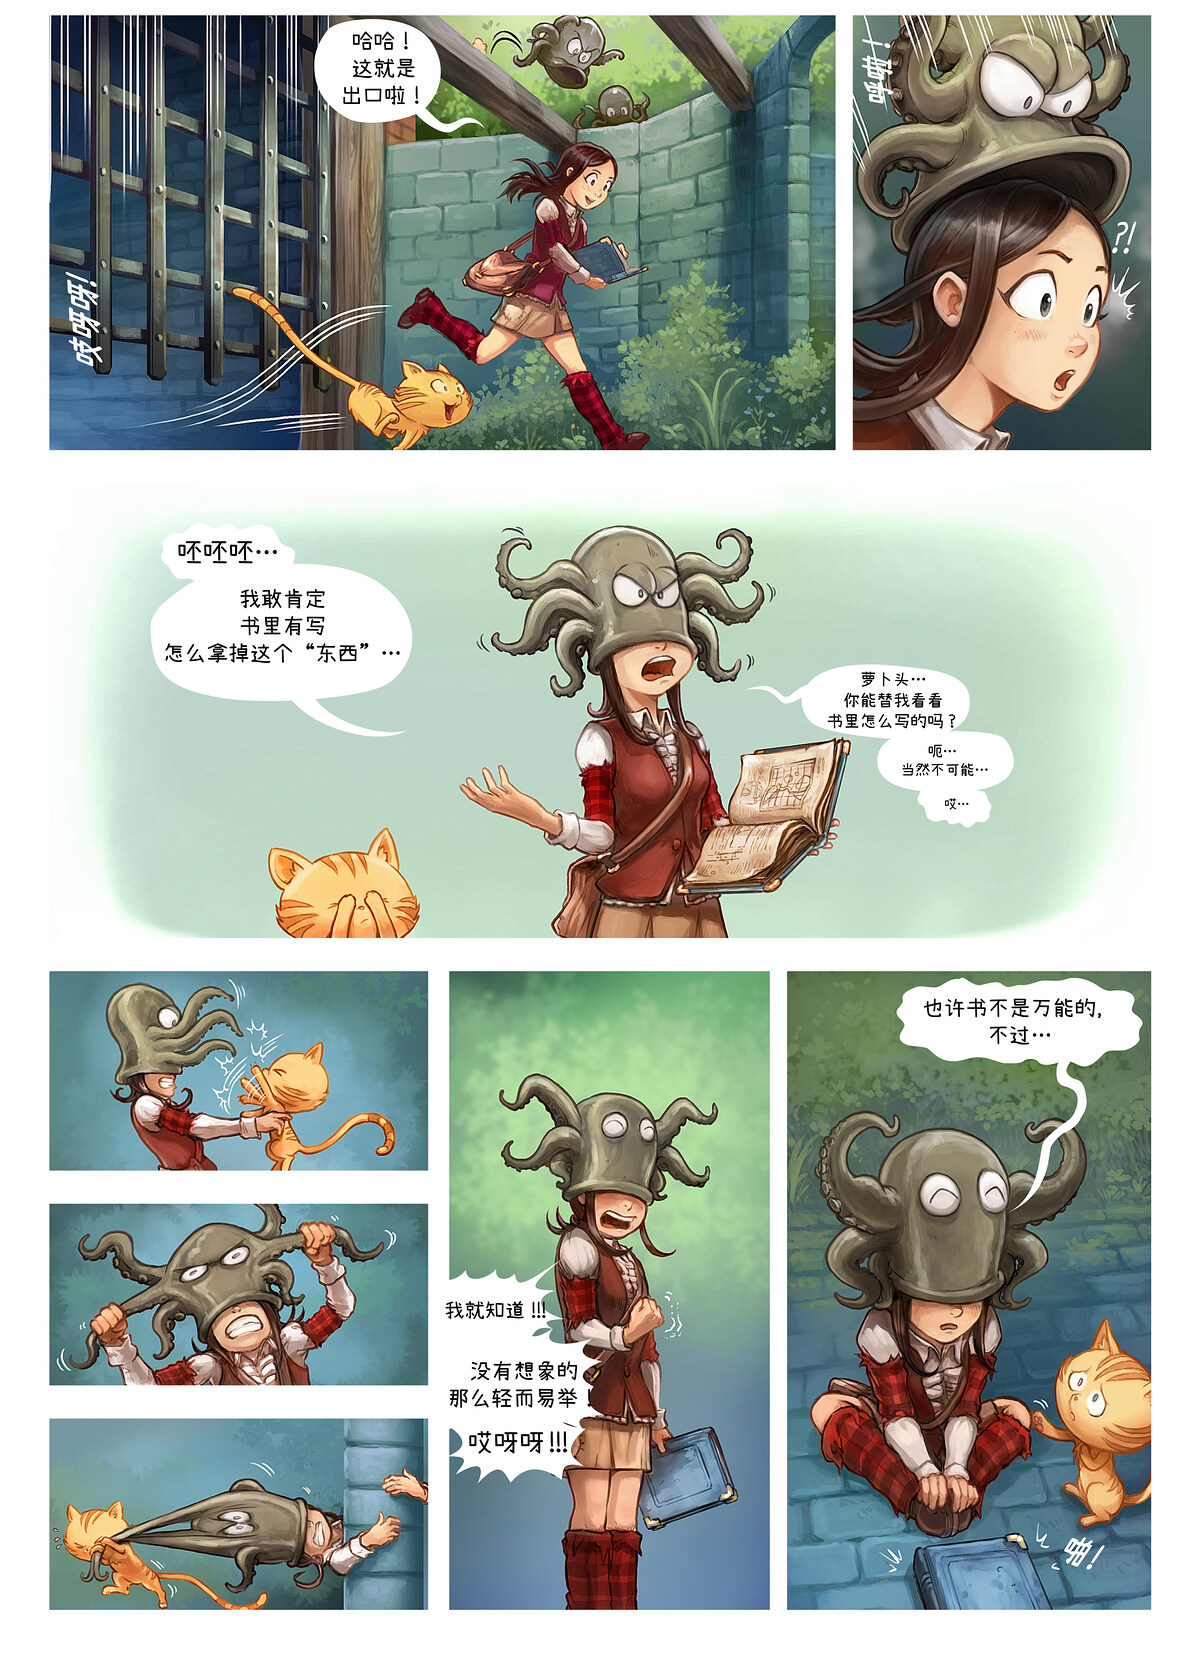 A webcomic page of Pepper&Carrot, 漫画全集 26 [cn], 页面 5